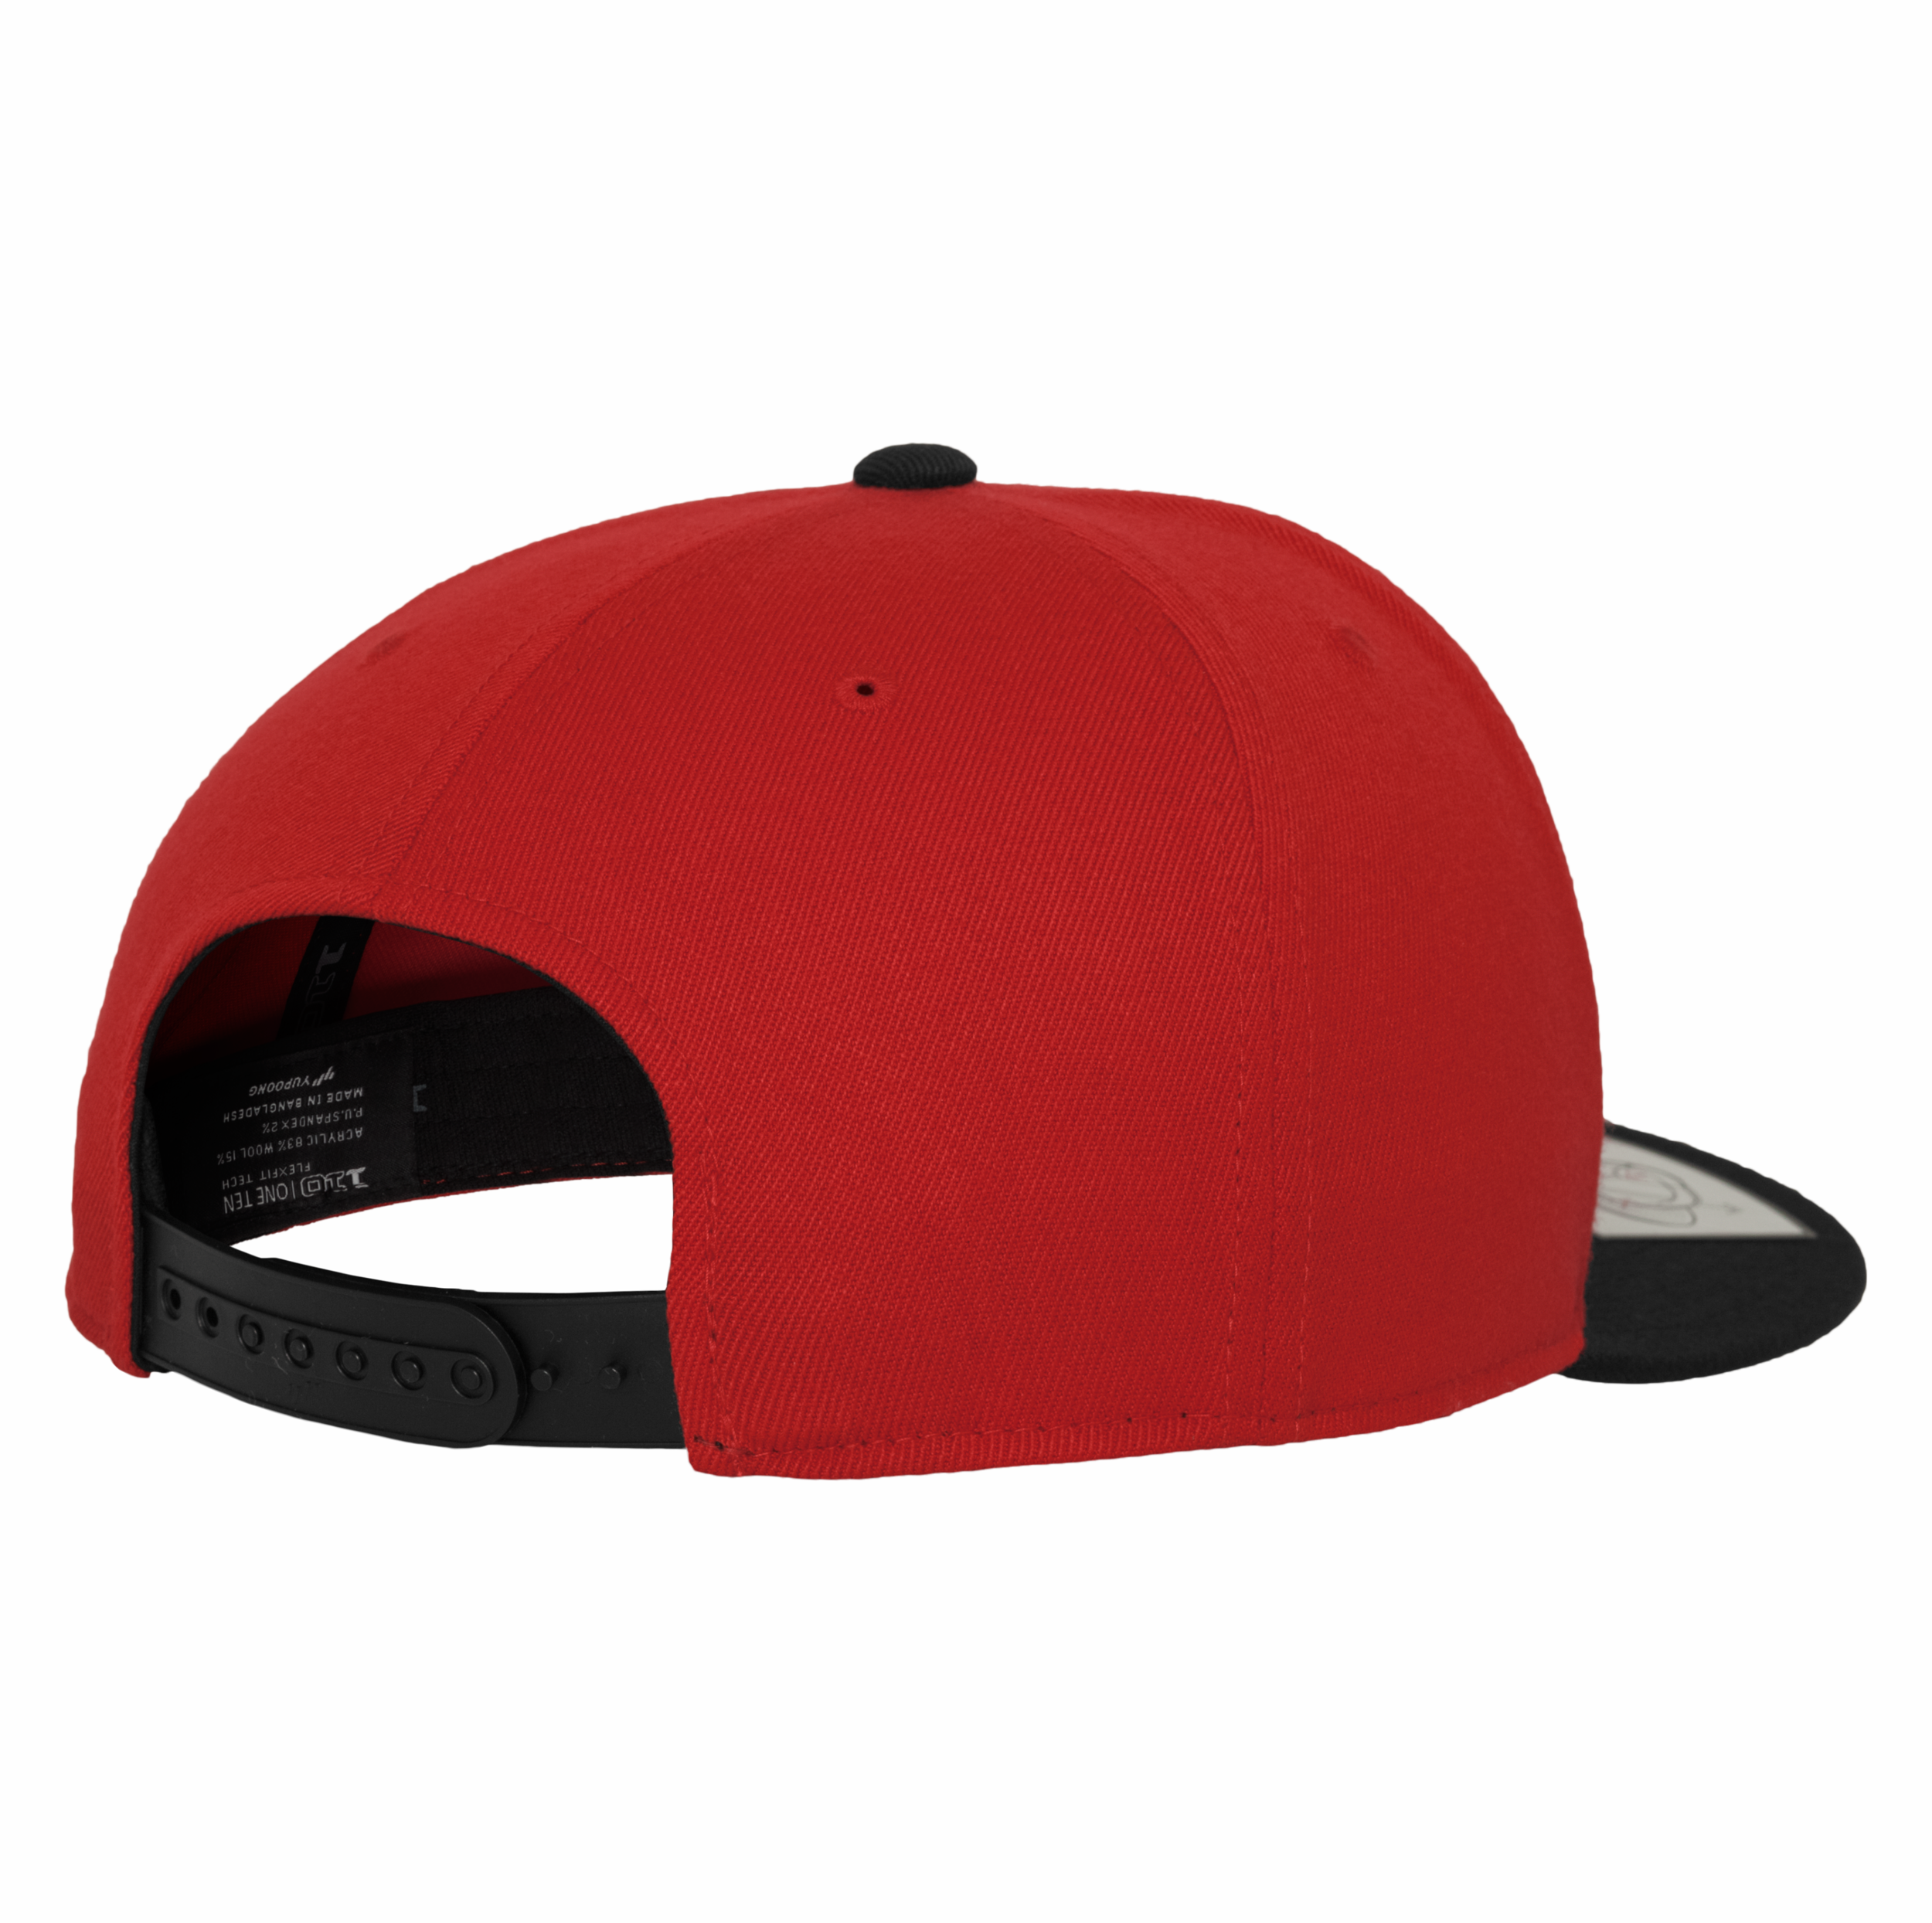 8bdc3797c84d2 110 Fitted Snapback - — Berlin Snapbacks